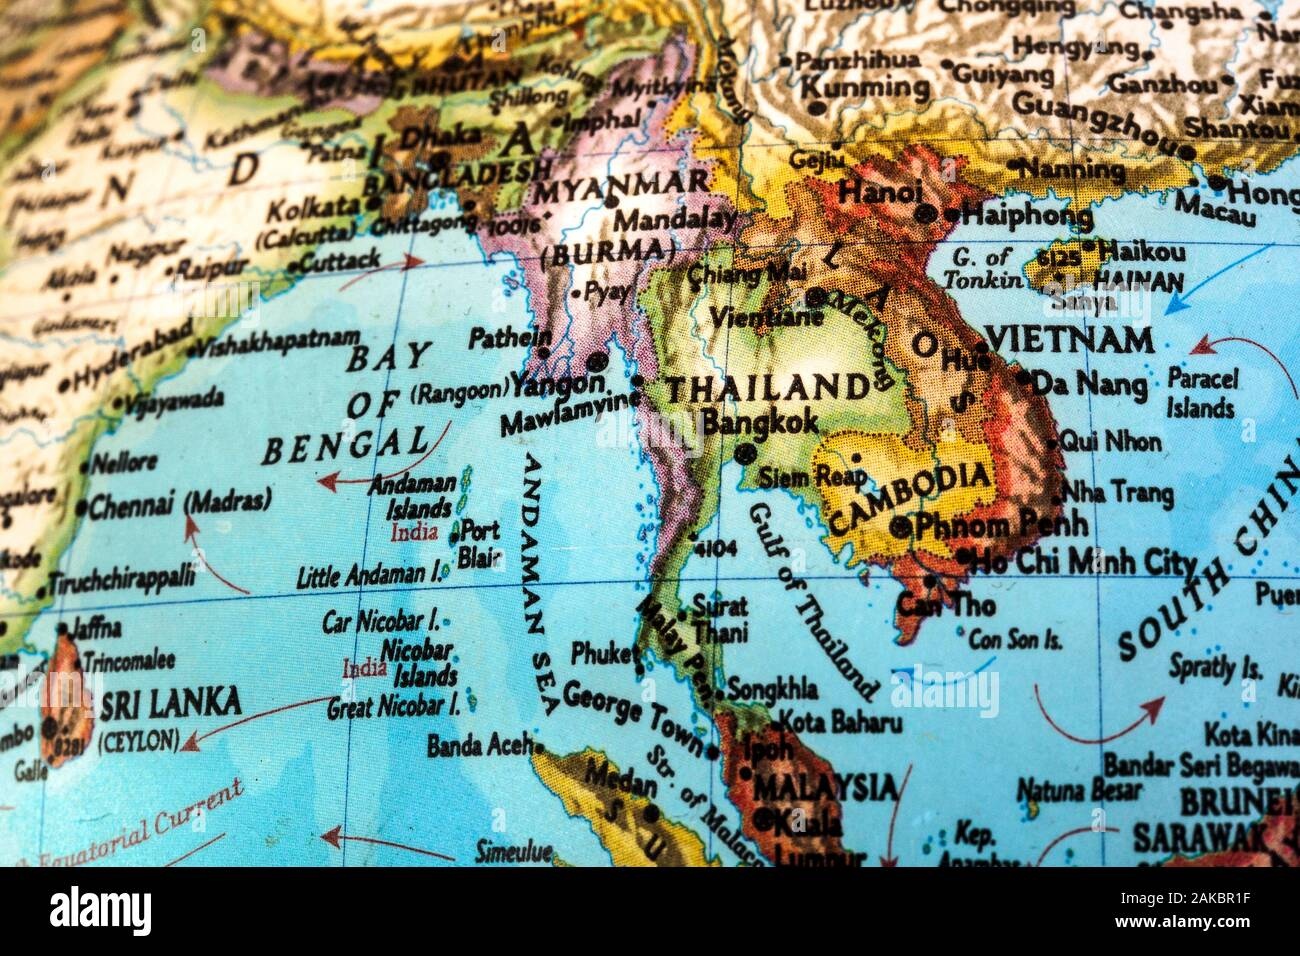 South East Asia Map High Resolution Stock Photography And Images Alamy